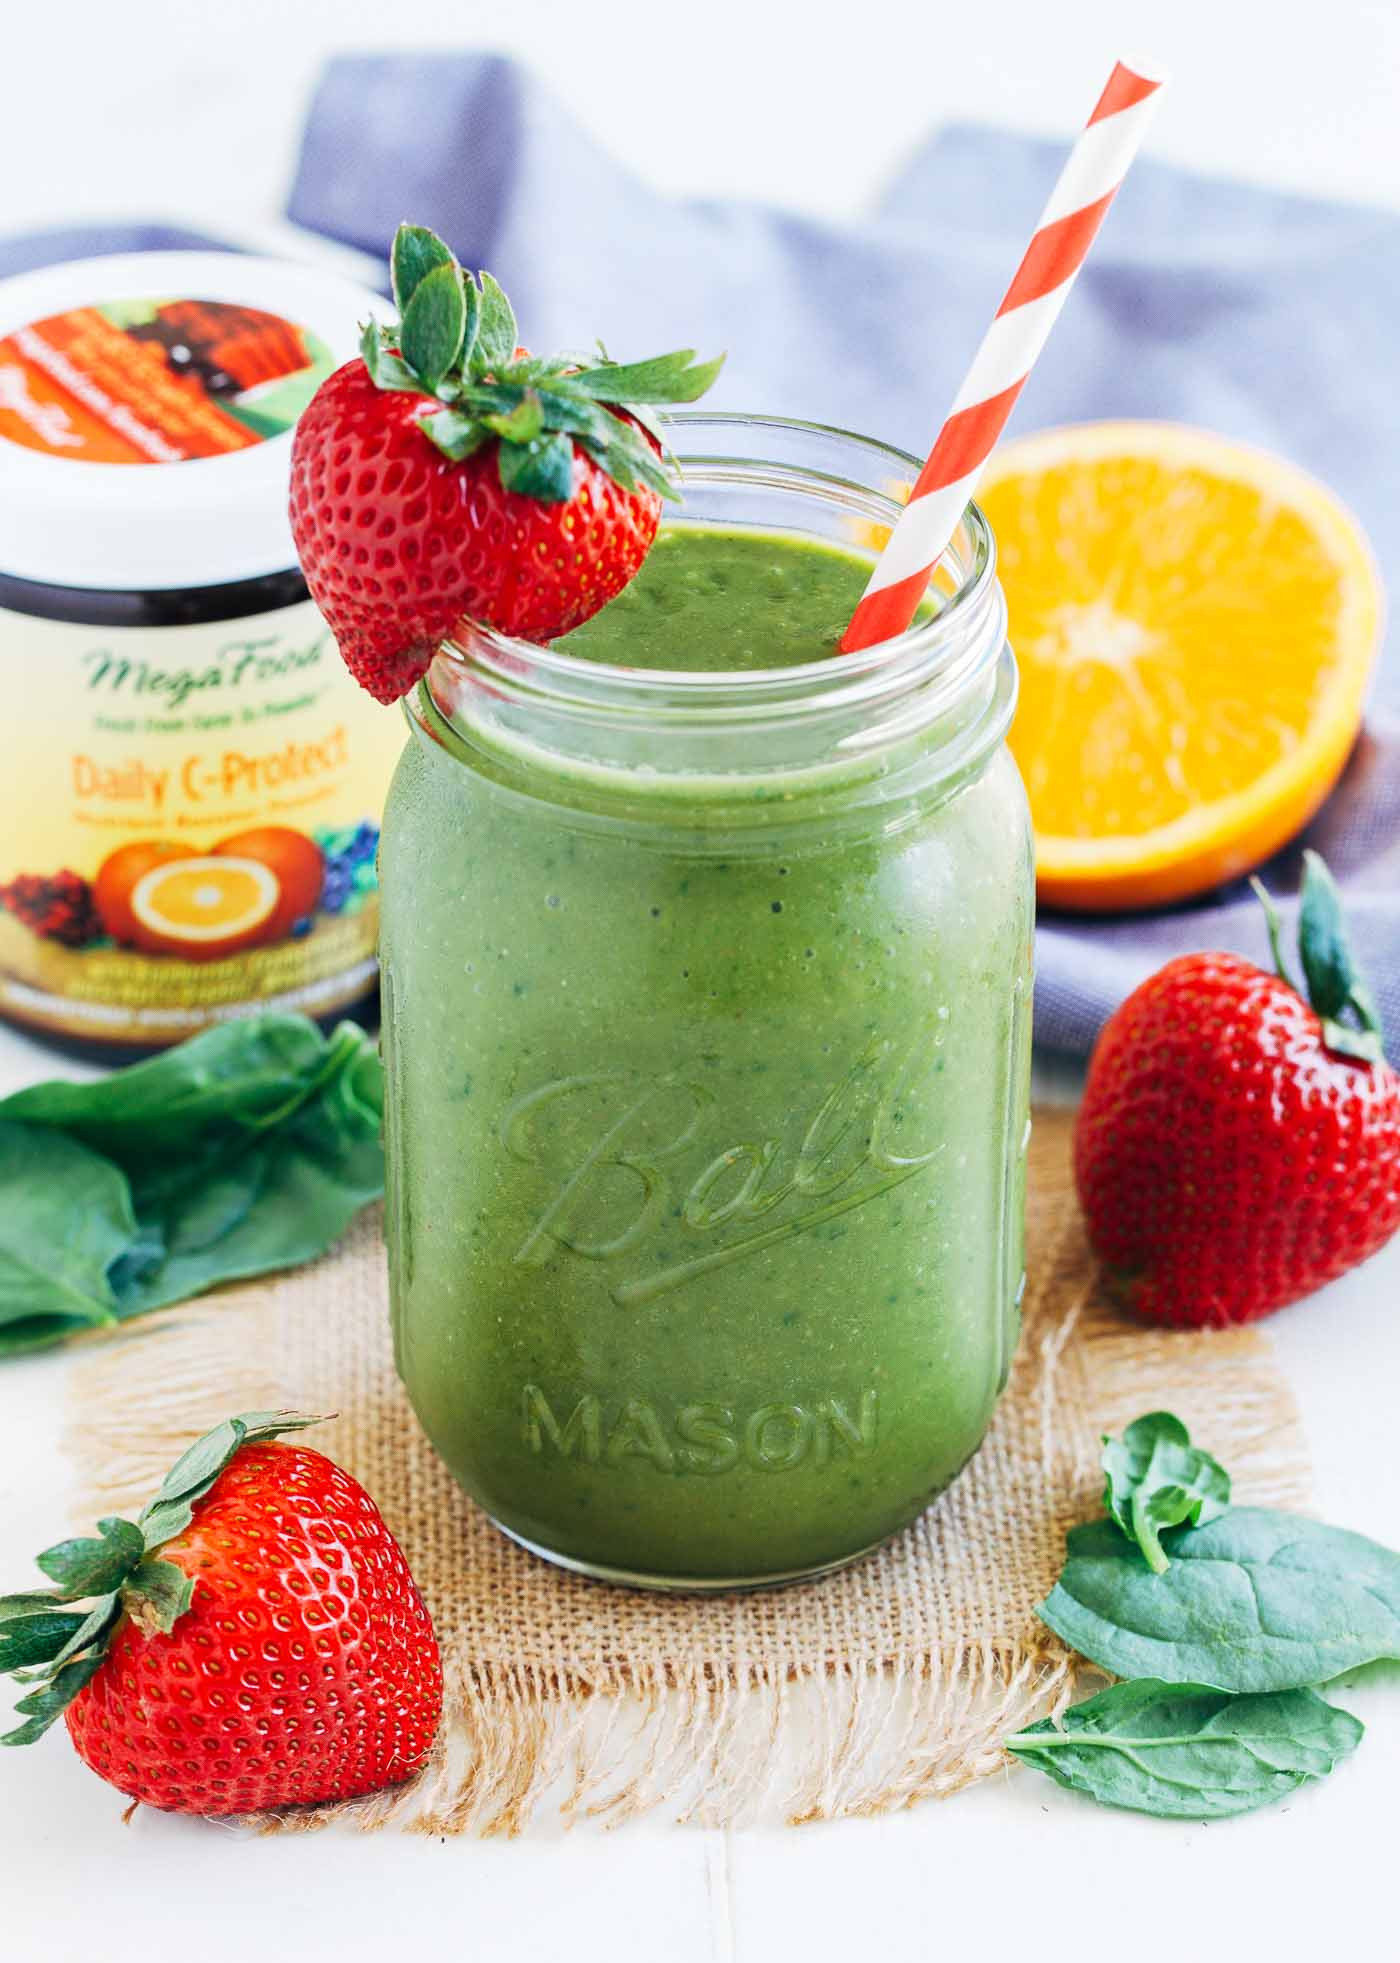 Smoothie Recipes With Spinach  Strawberry Mango Spinach Smoothie Making Thyme for Health